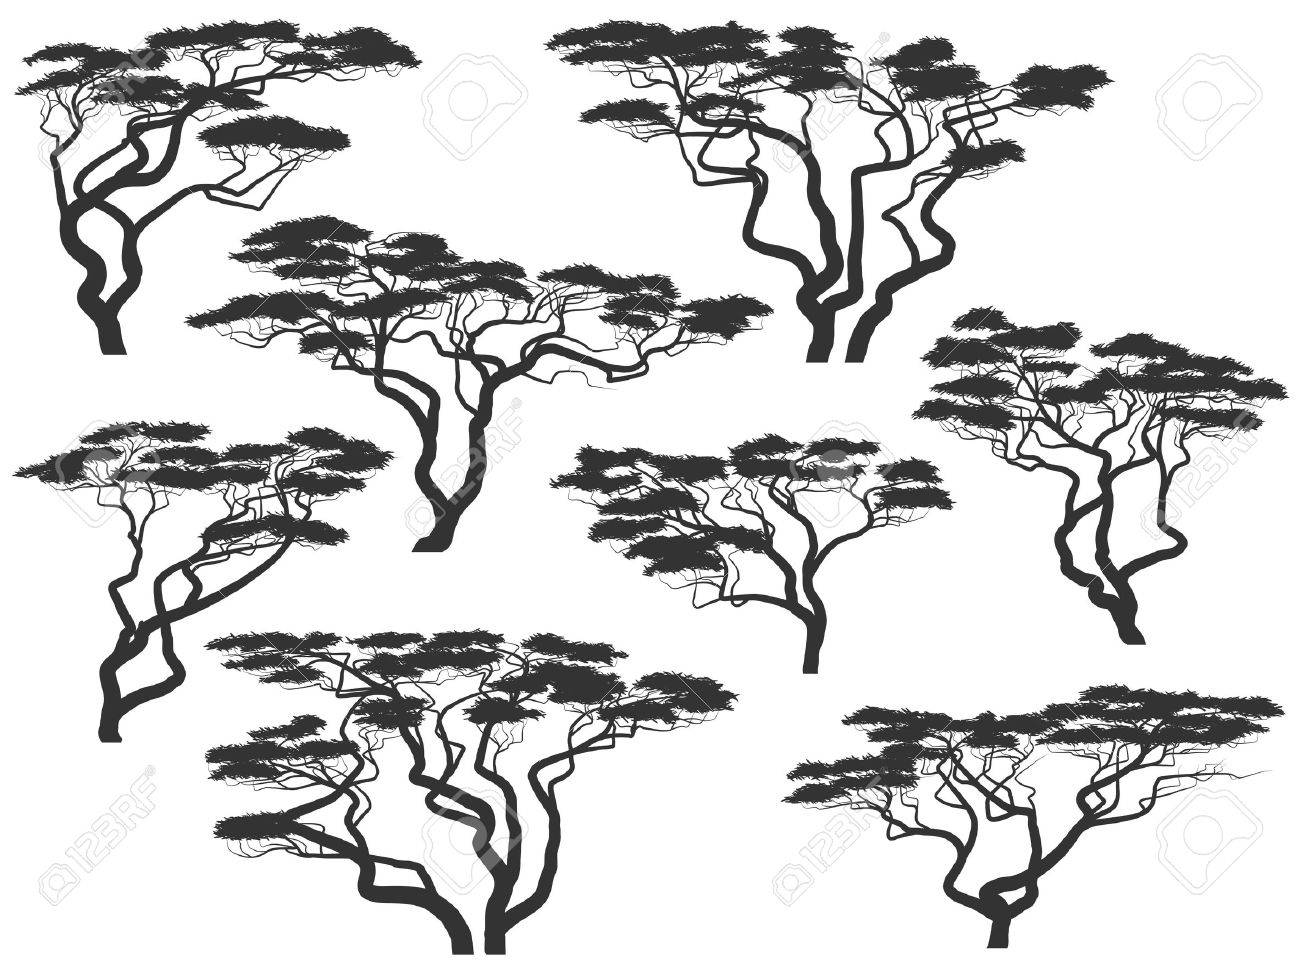 Set of vector silhouettes of African acacia trees isolated on white. Stock Vector - 16006798